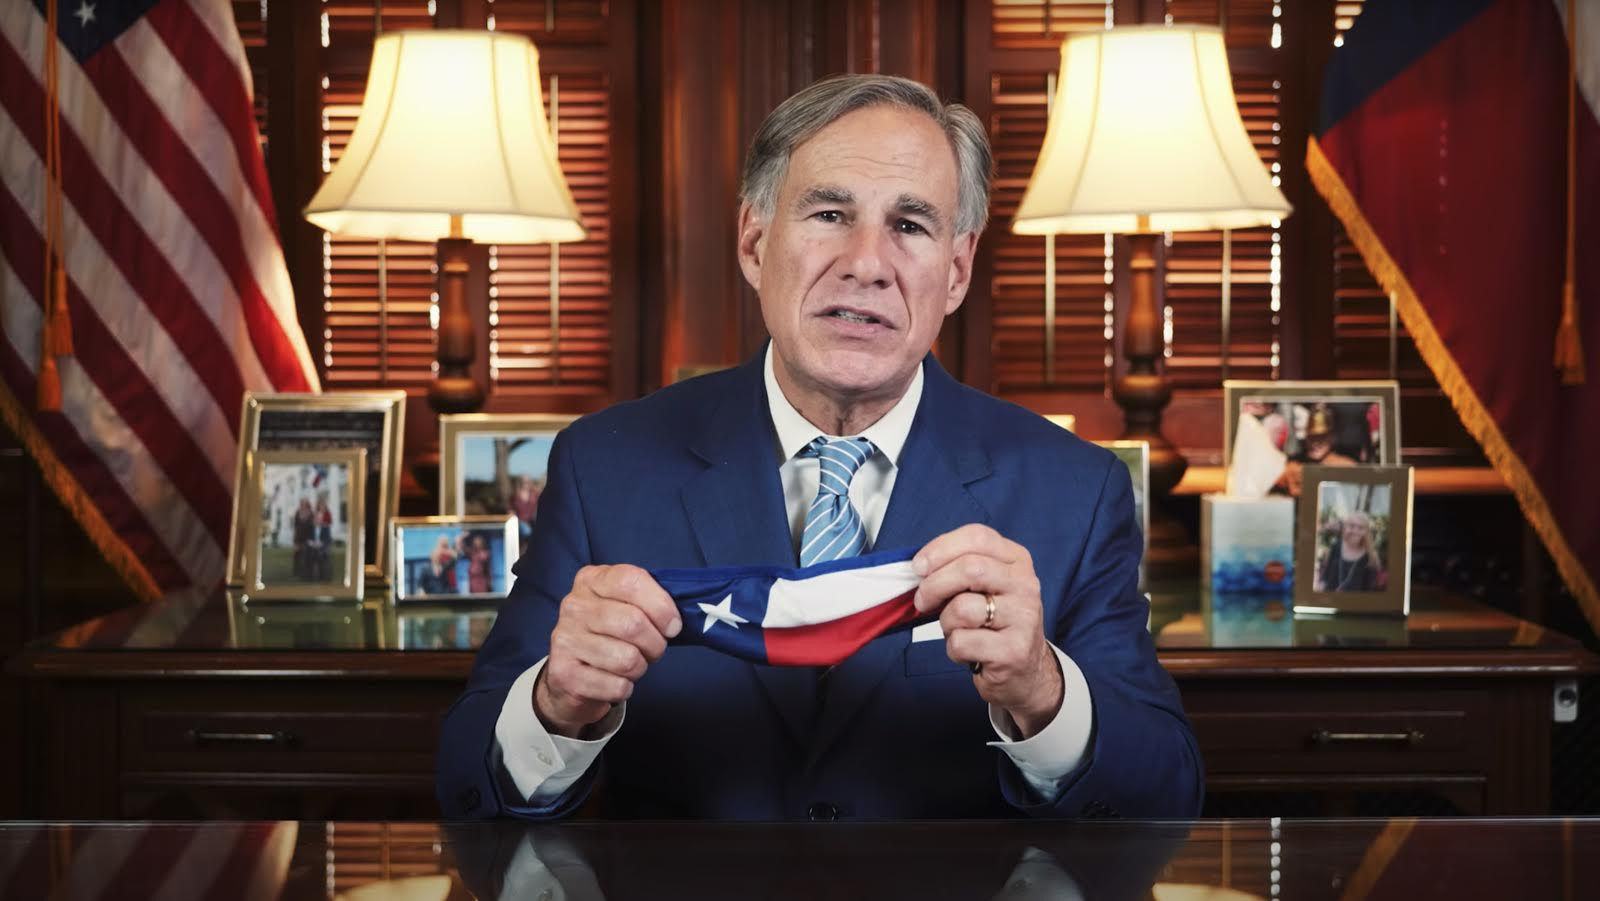 On Thursday, Gov. Greg Abbott announced his statewide order requiring Texans to wear masks in public and letting local officials restrict outdoor gatherings of more than 10 people. After making the announcement in a 7-minute video his office produced, Abbott appeared on 5 local newscasts and a virtual townhall on a Houston station. (Screen shot from Abbott's YouTube channel)